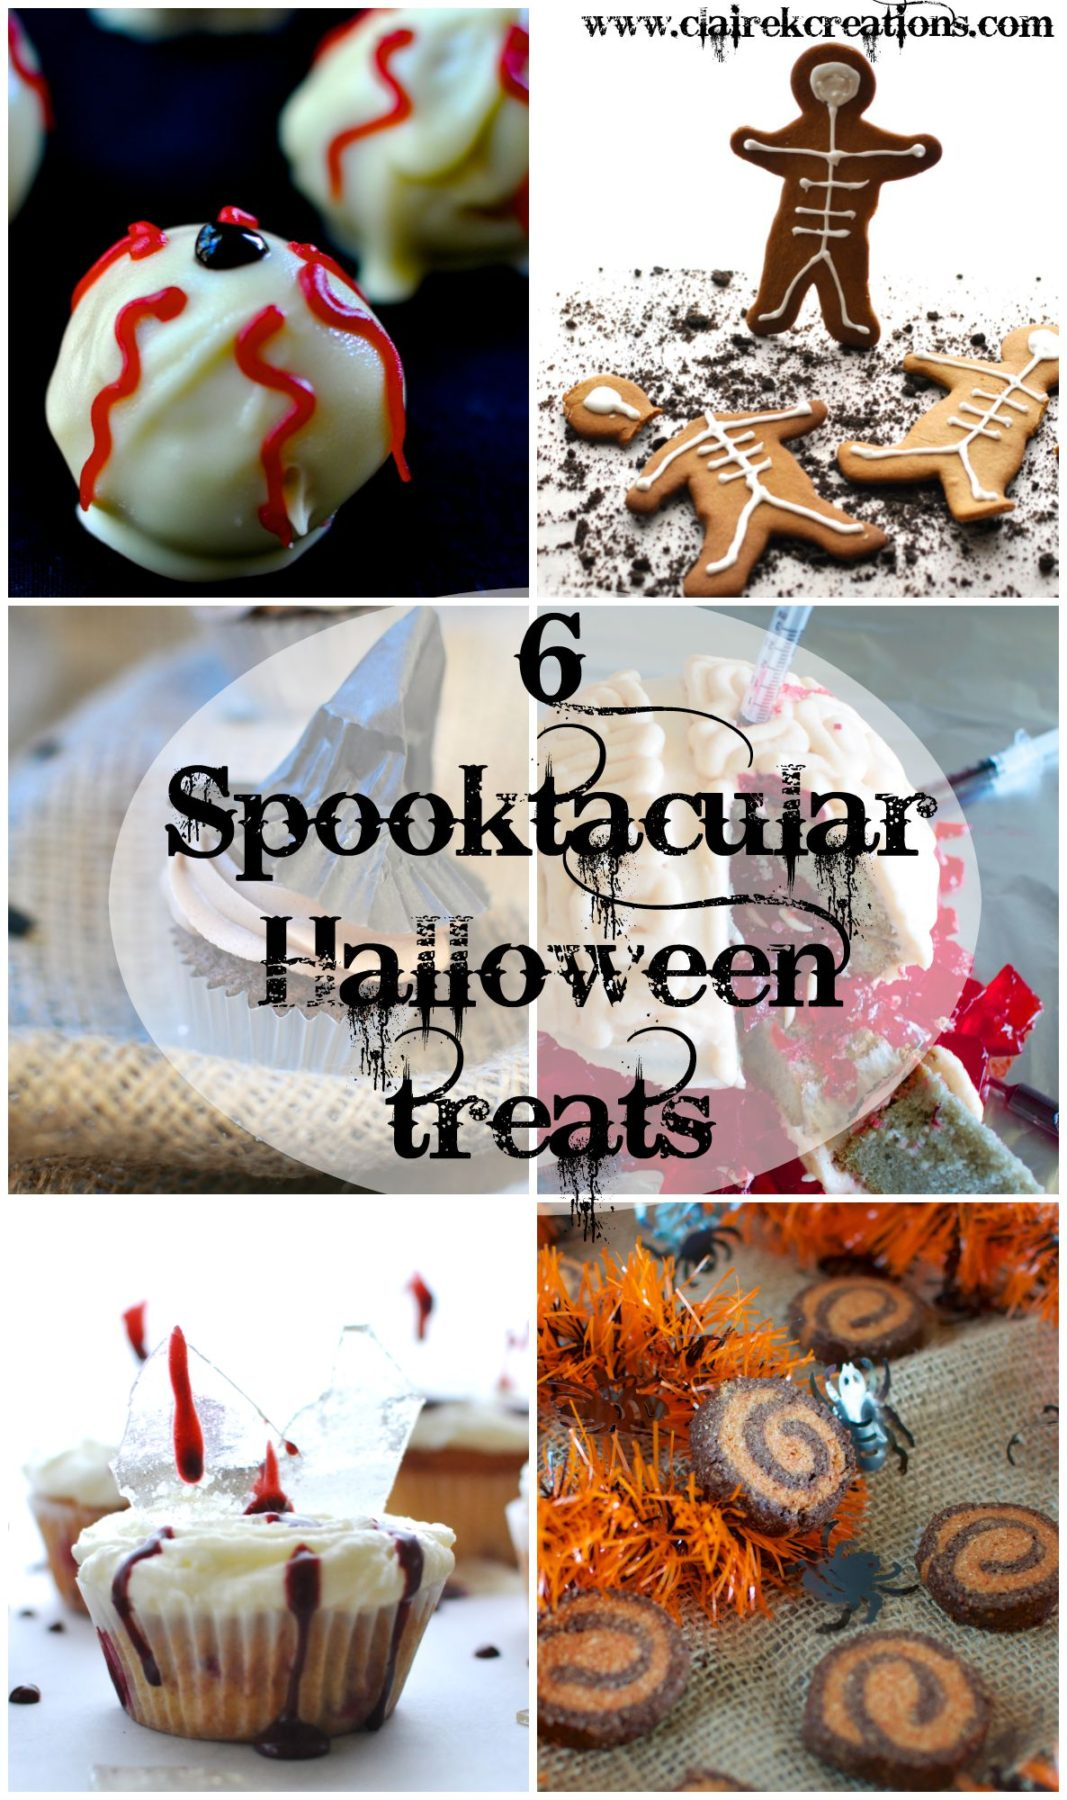 6 spooktacular Halloween treats via www.clairekcreations.com